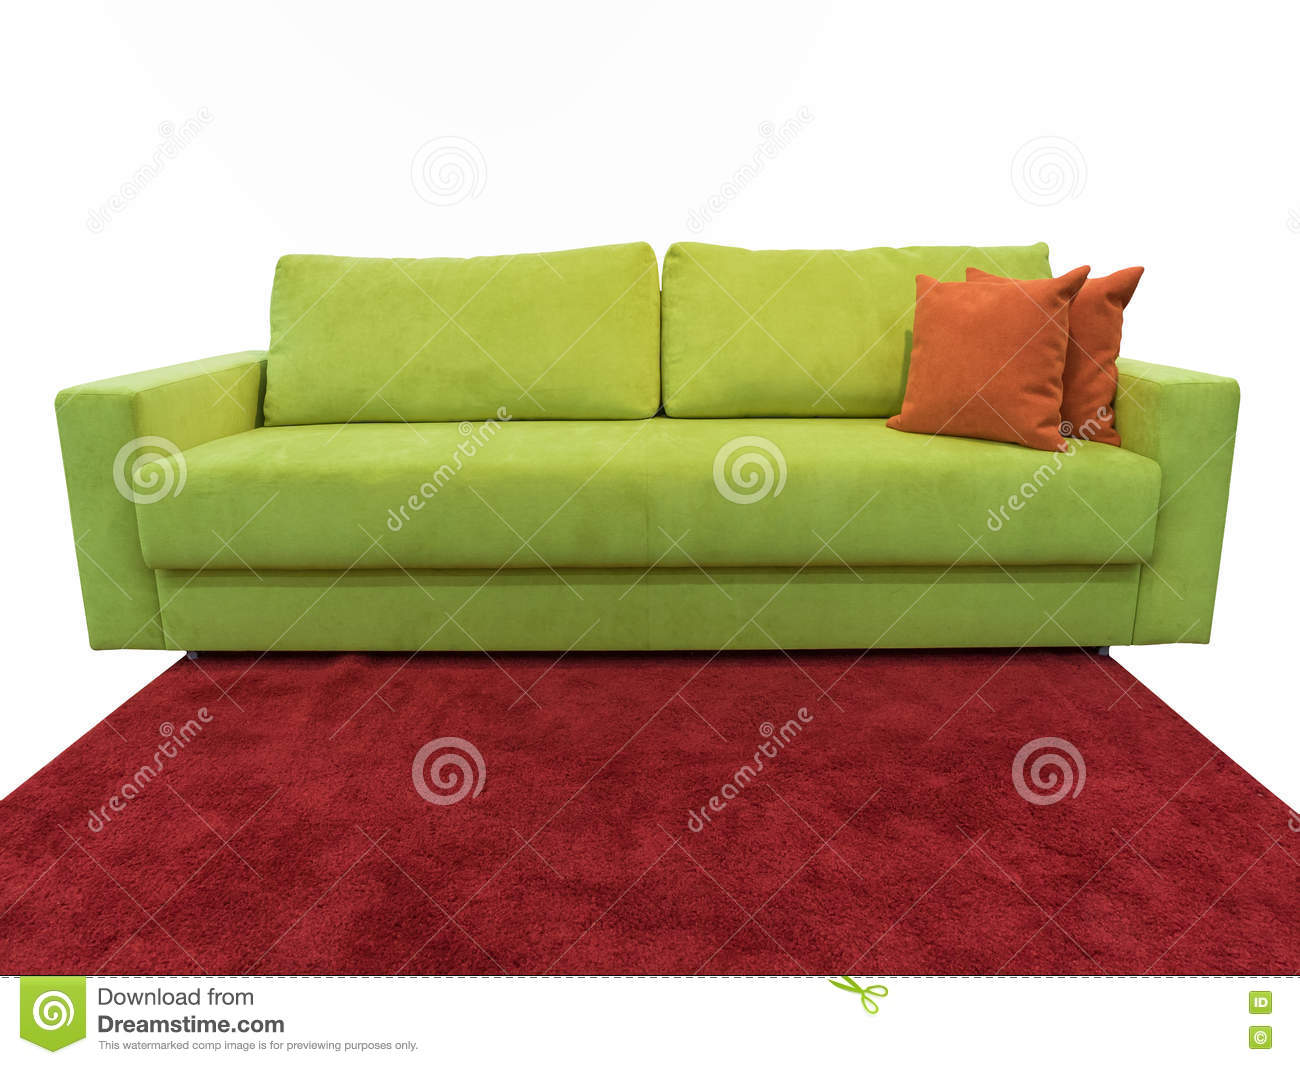 light green sofa with pillows stock image image of furnishing rh dreamstime com